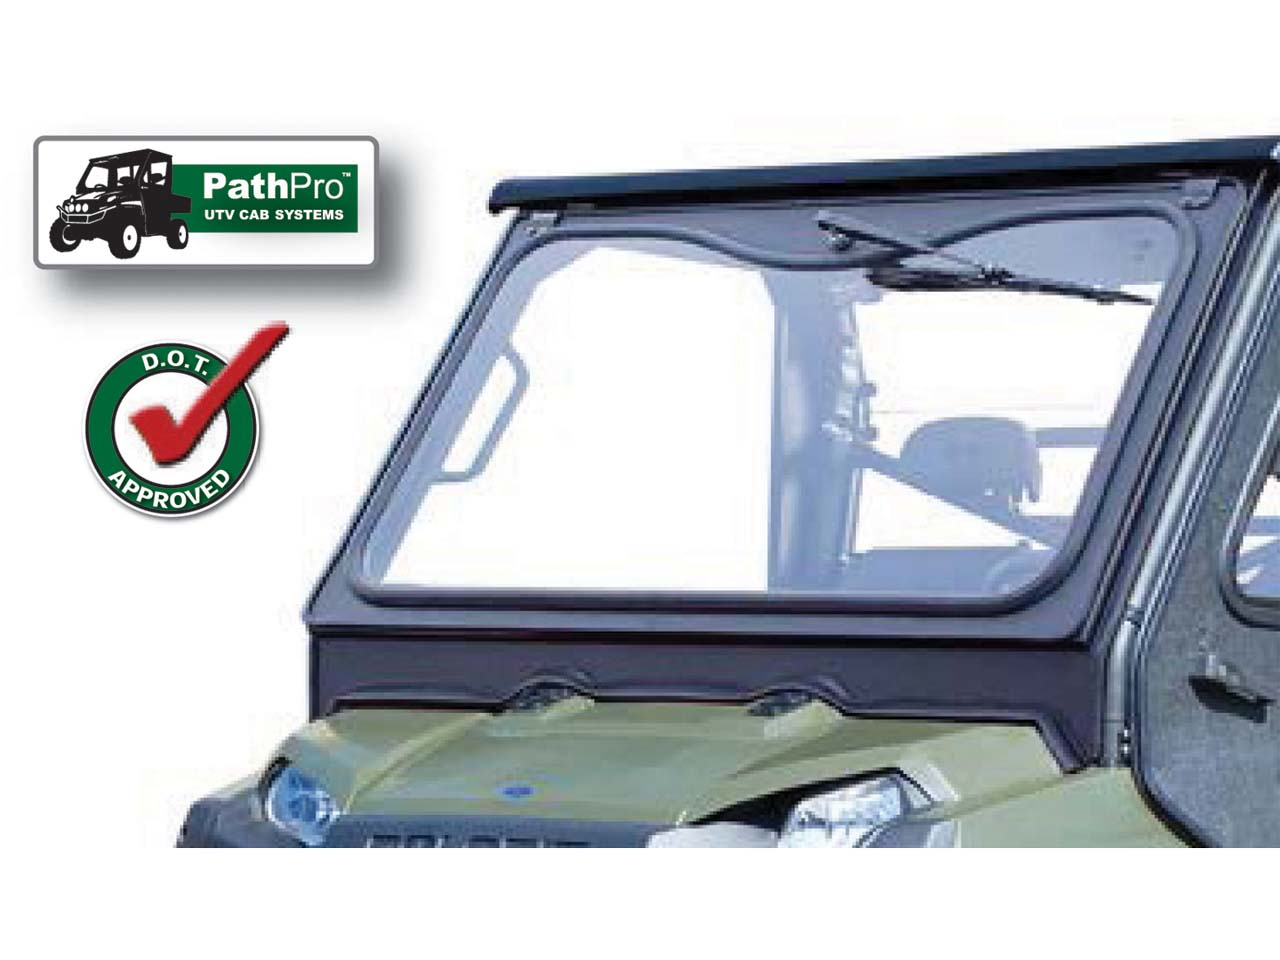 Curtis Introduces Two New Windshield Options For PathPro